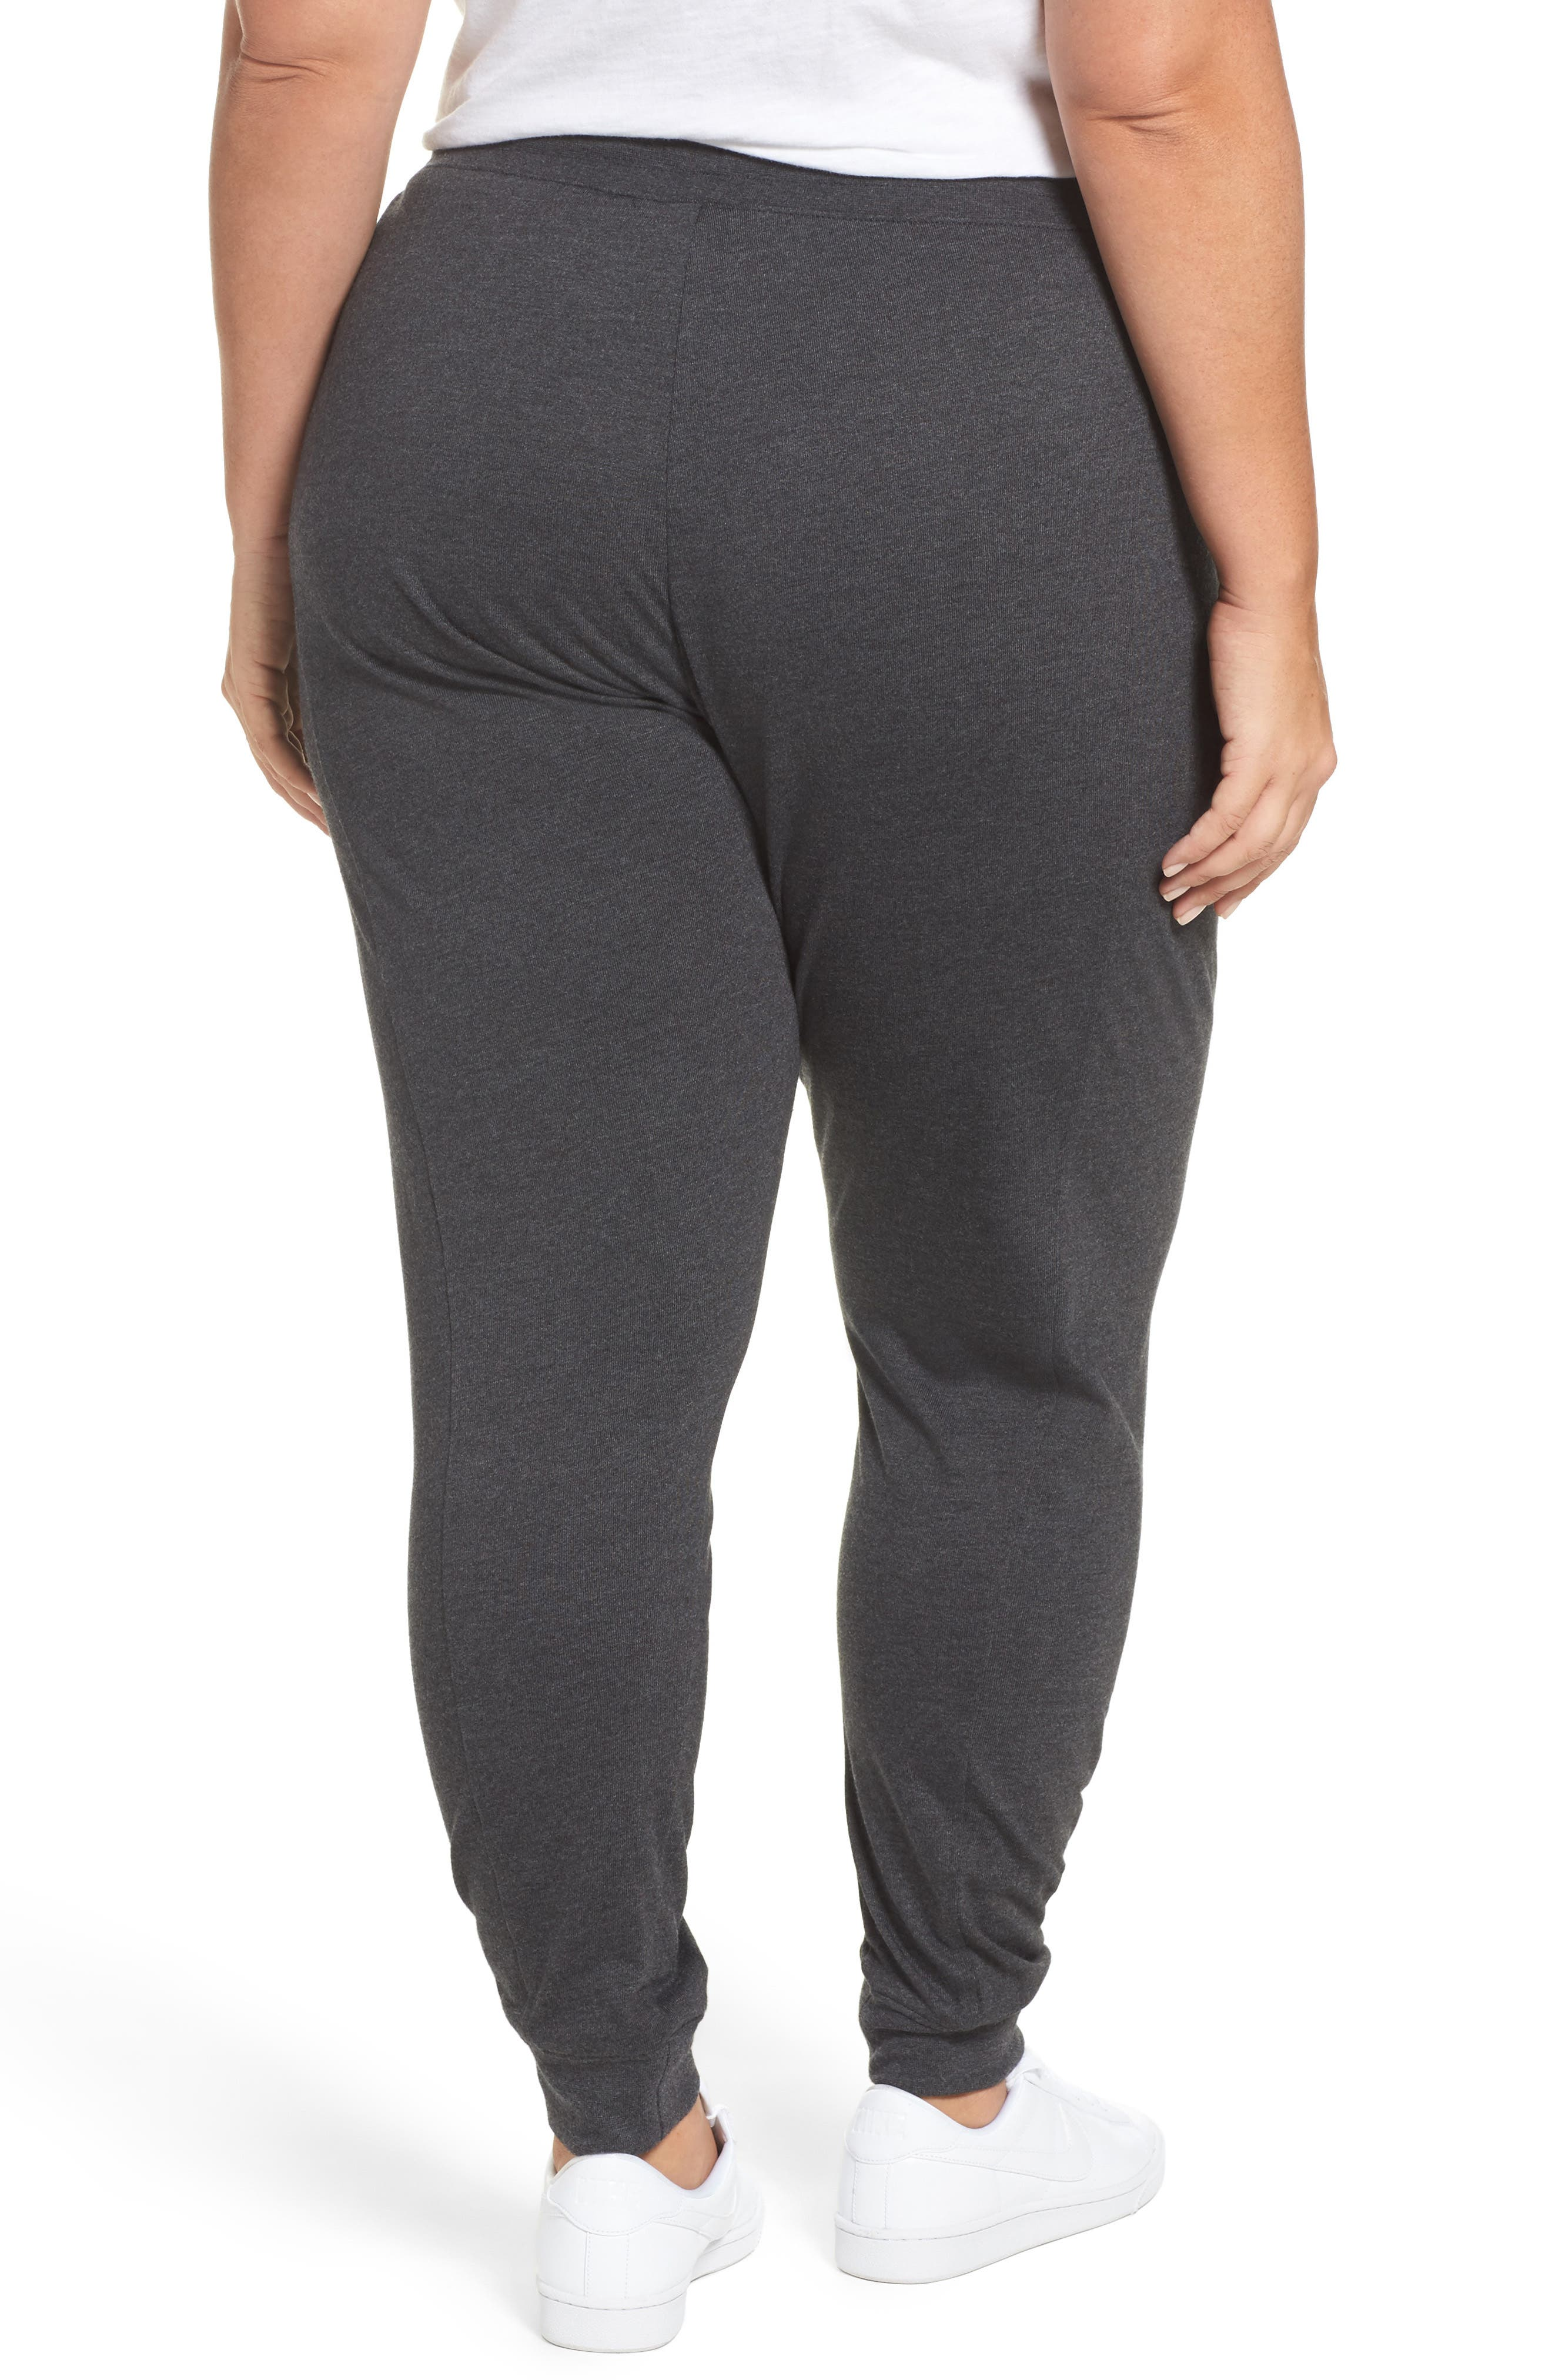 Sportswear Gym Classic Pants,                             Alternate thumbnail 3, color,                             Black Heather/ Sail